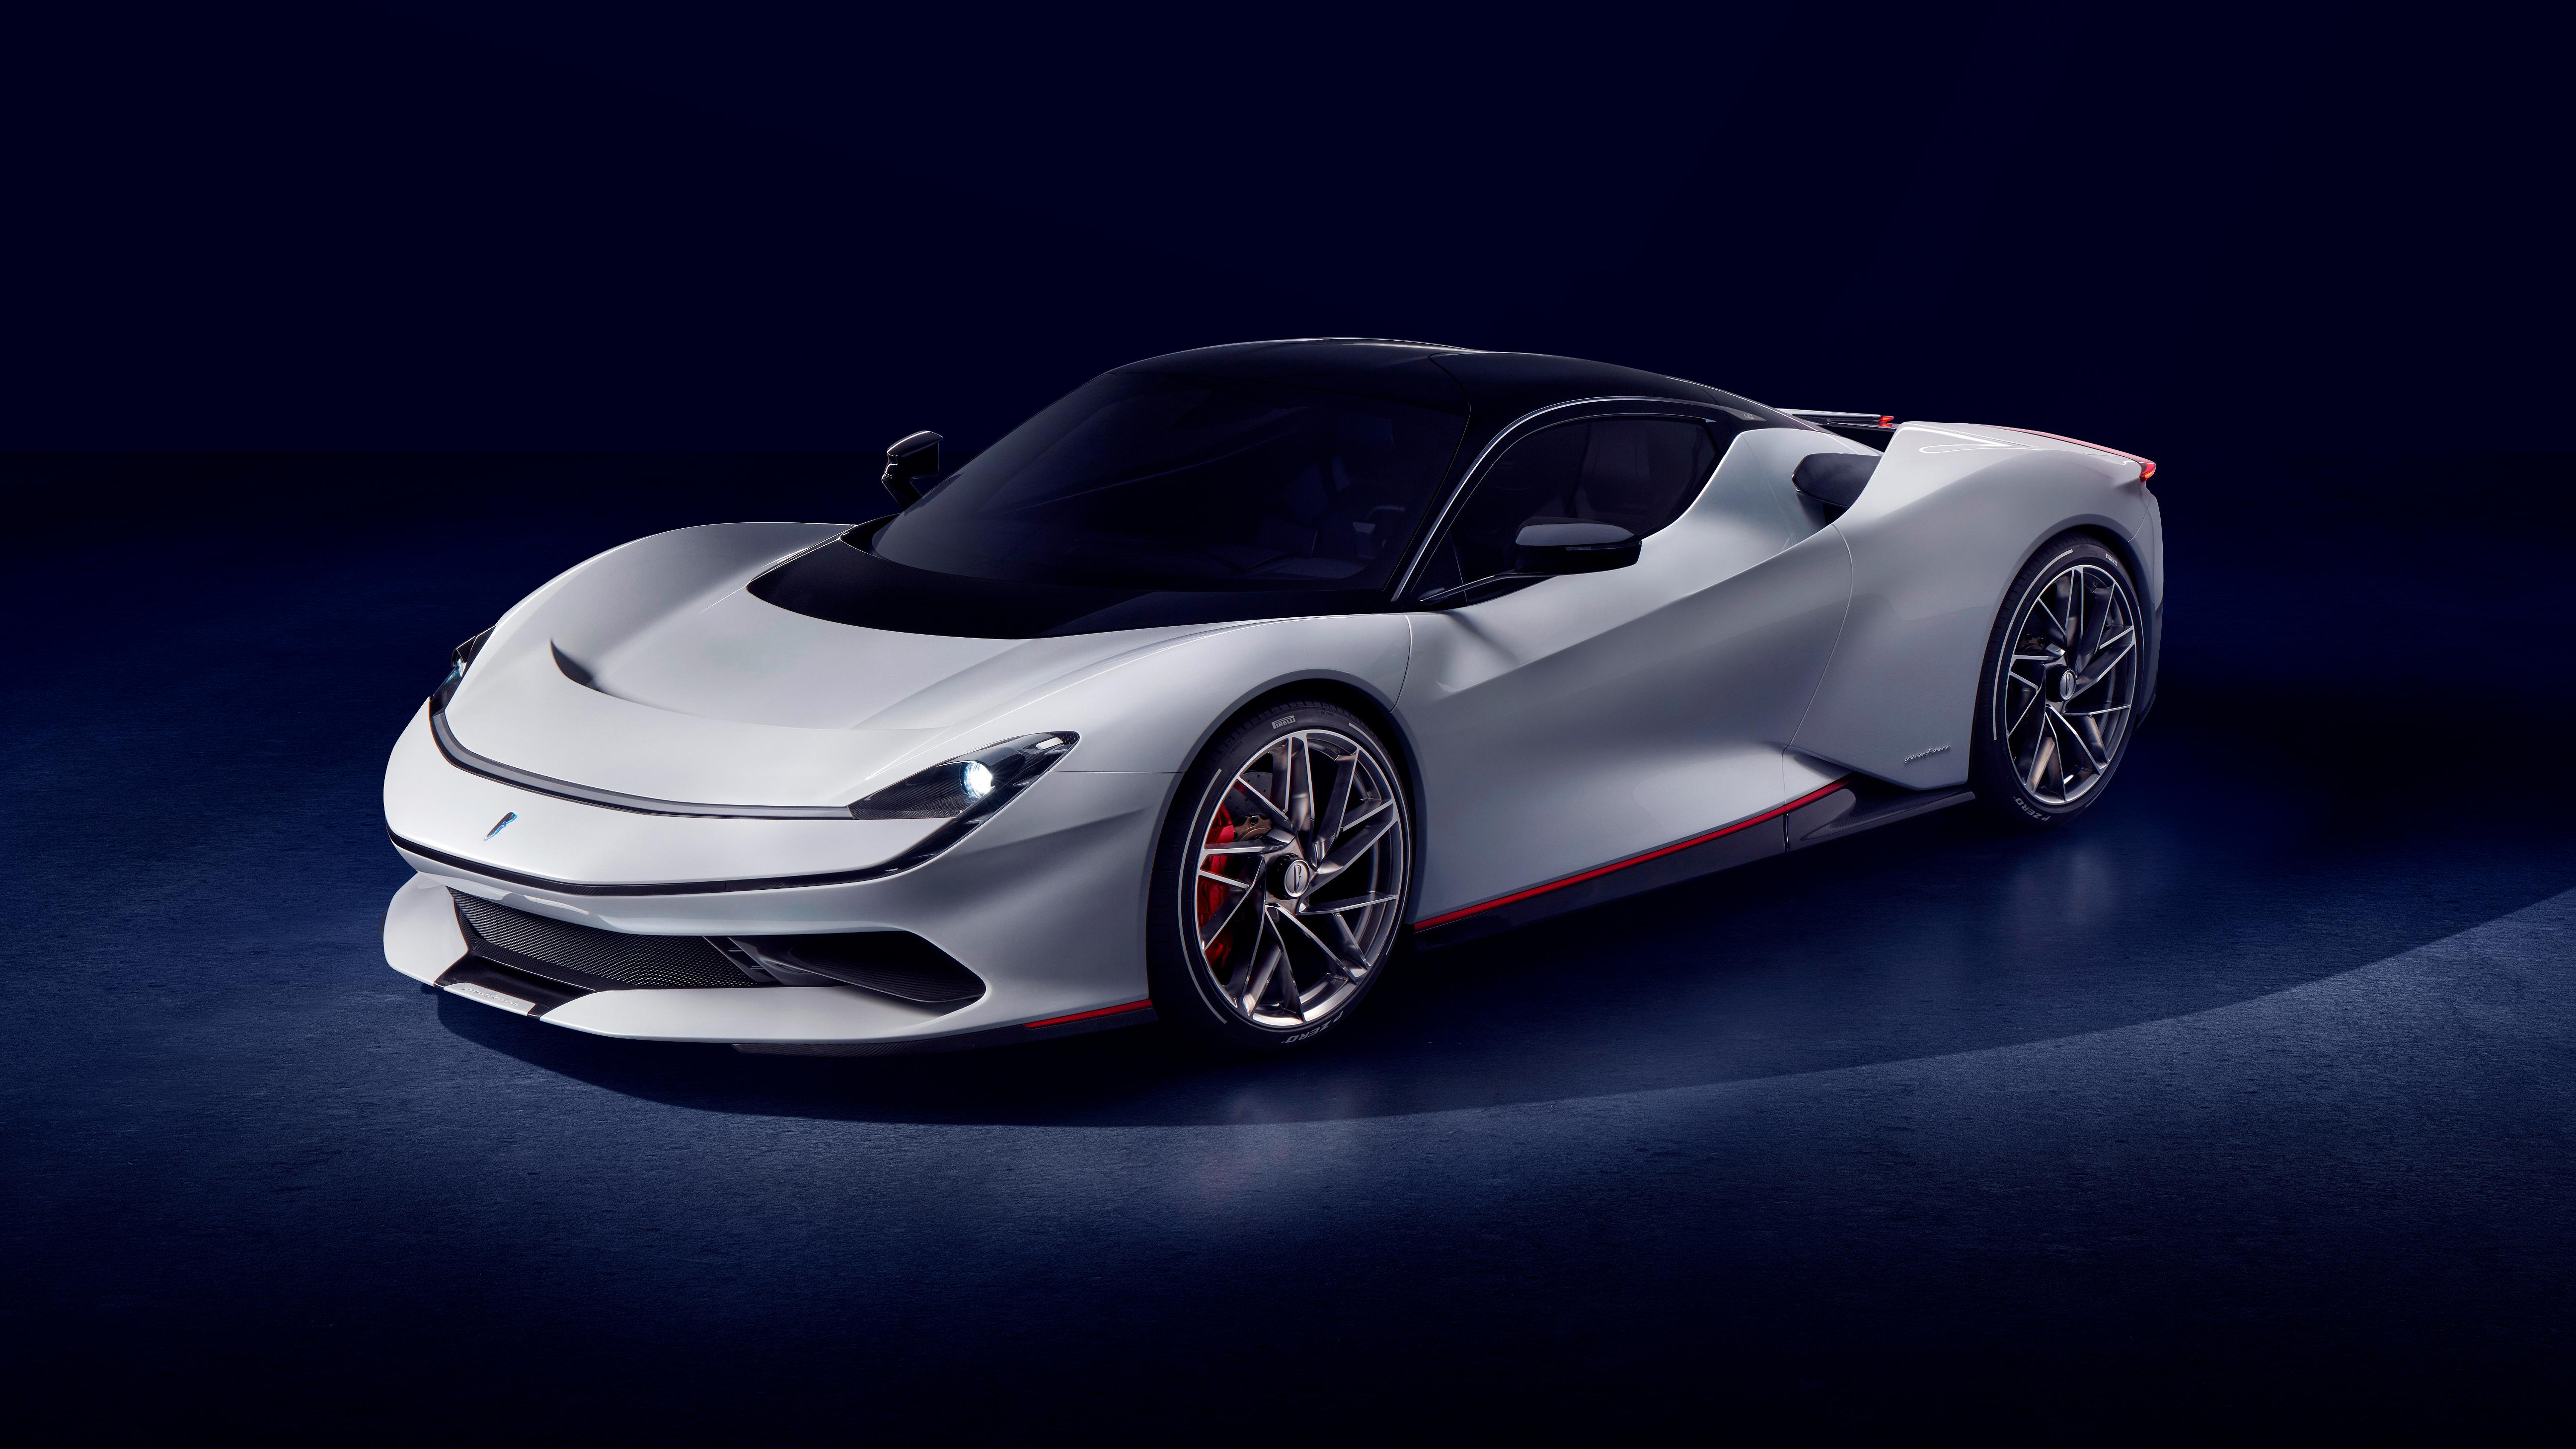 Ferrari Past Models More Than 60 Years Of Cars Ferrari Com >> Pininfarina Battista 2 Million All Electric Supercar Cnn Style